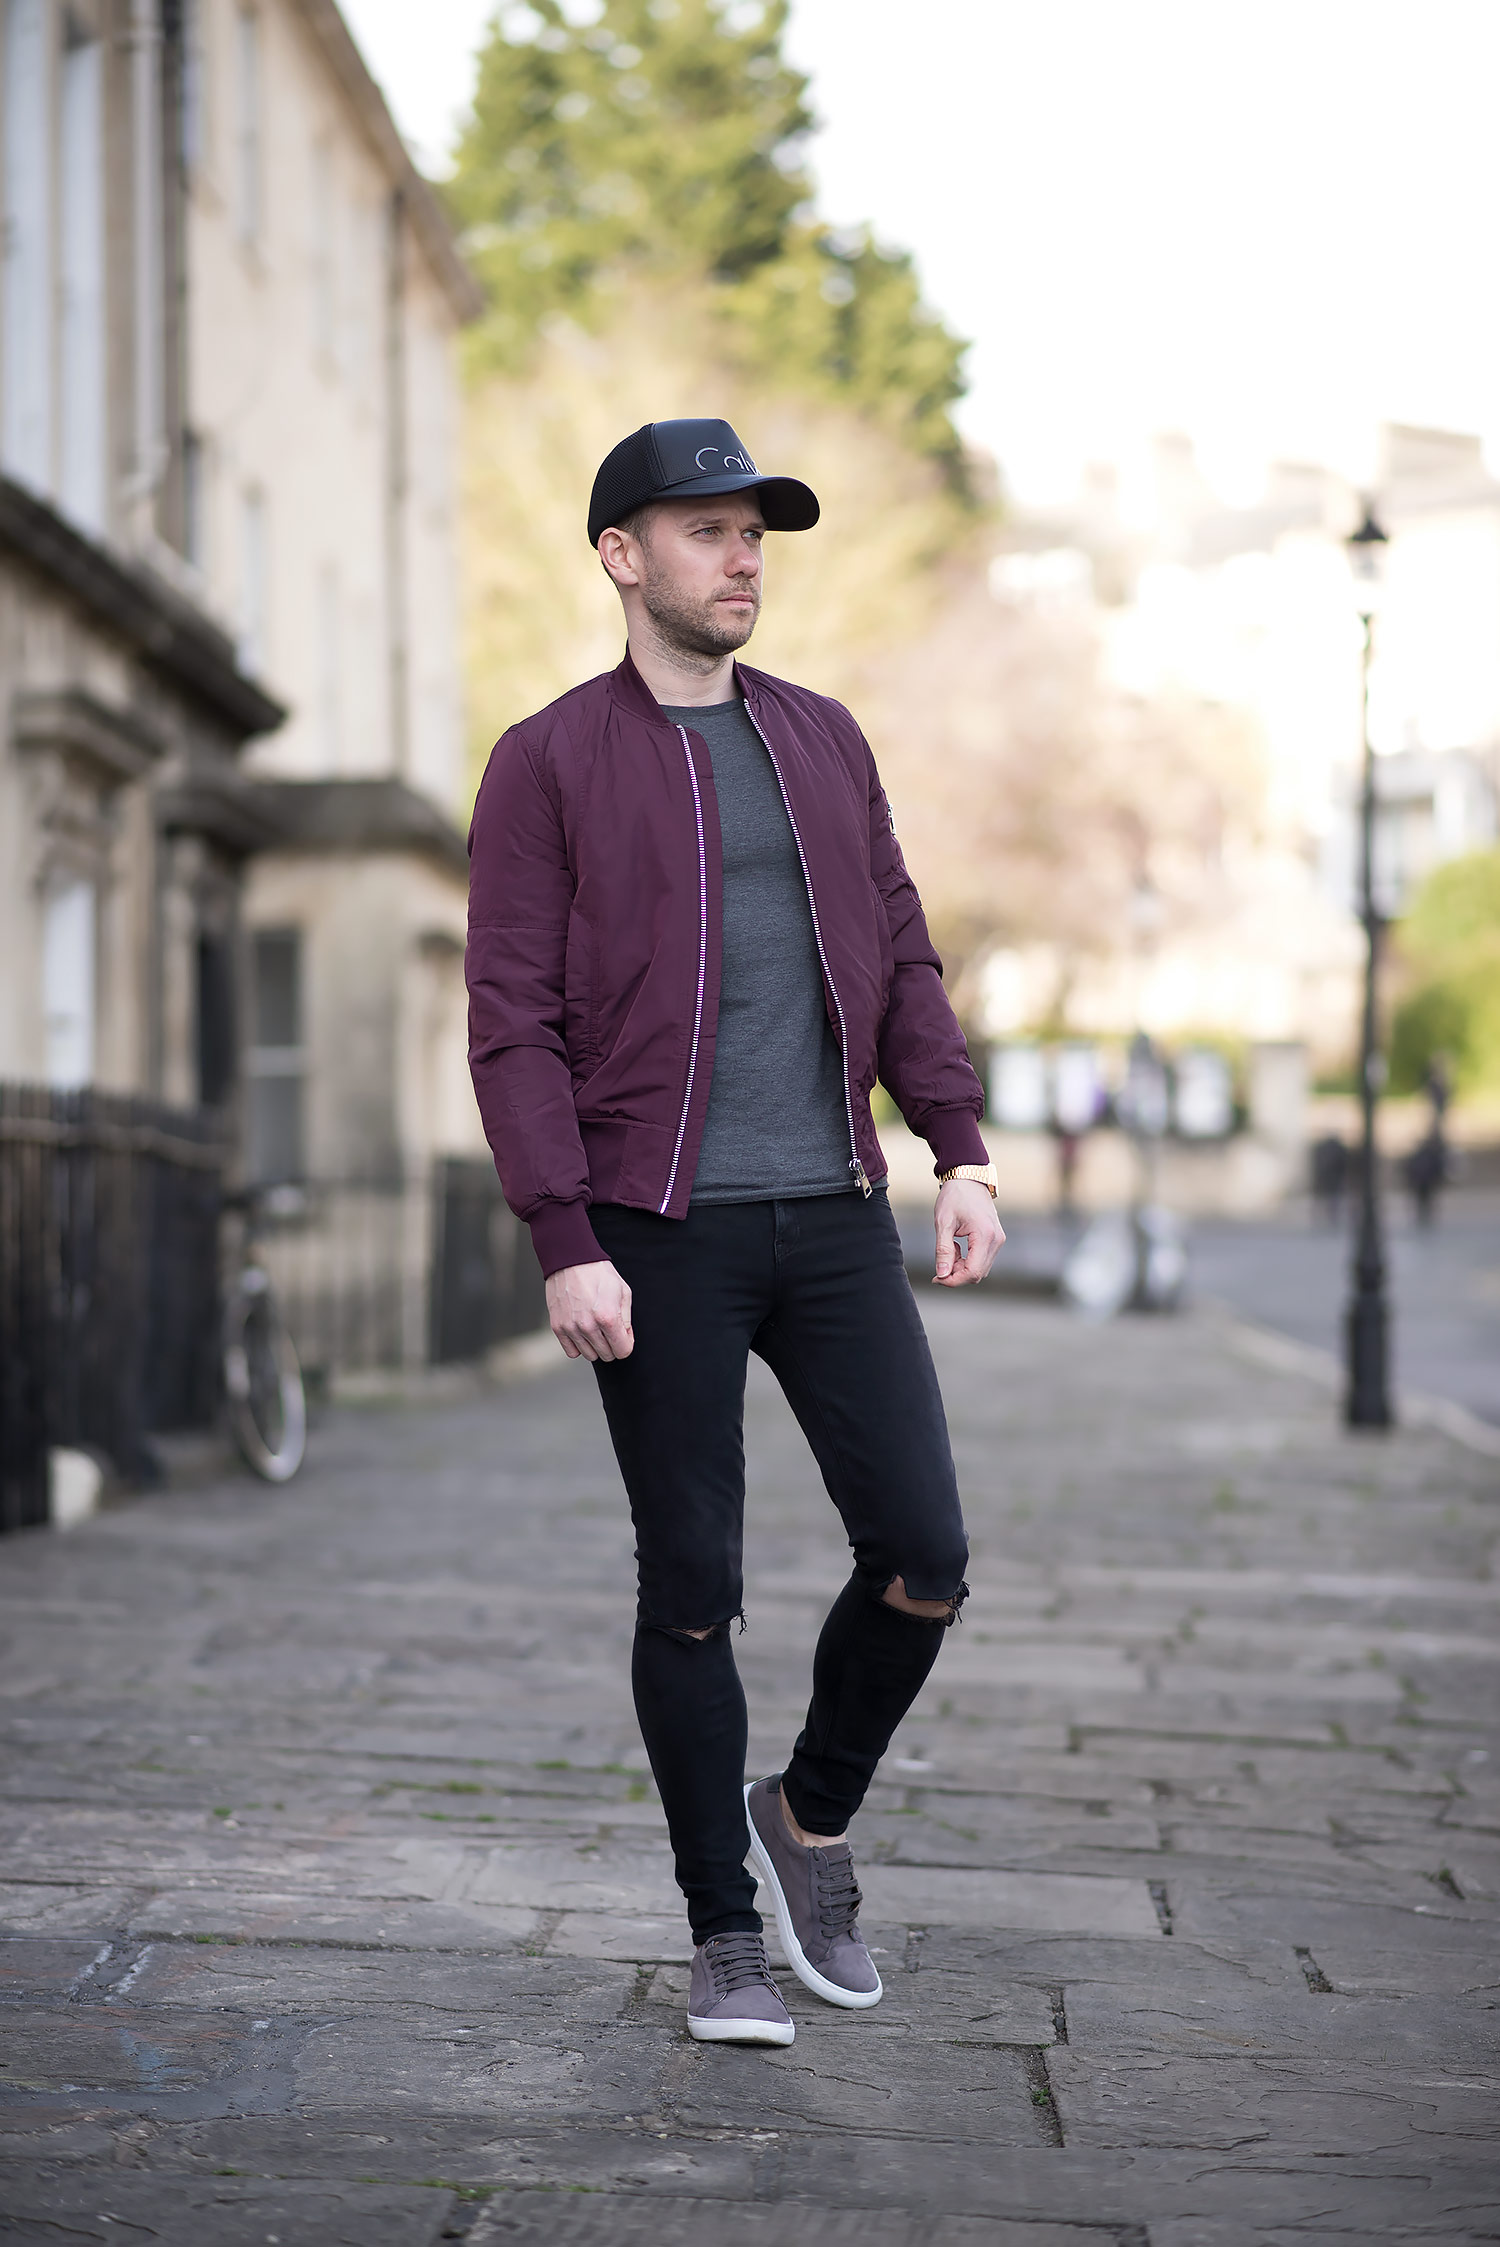 Mens-Fashion-Blog-Burgundy-Bomber-Jacket-Black-Ripped-Skinny-Jeans u2013 Your Average Guy